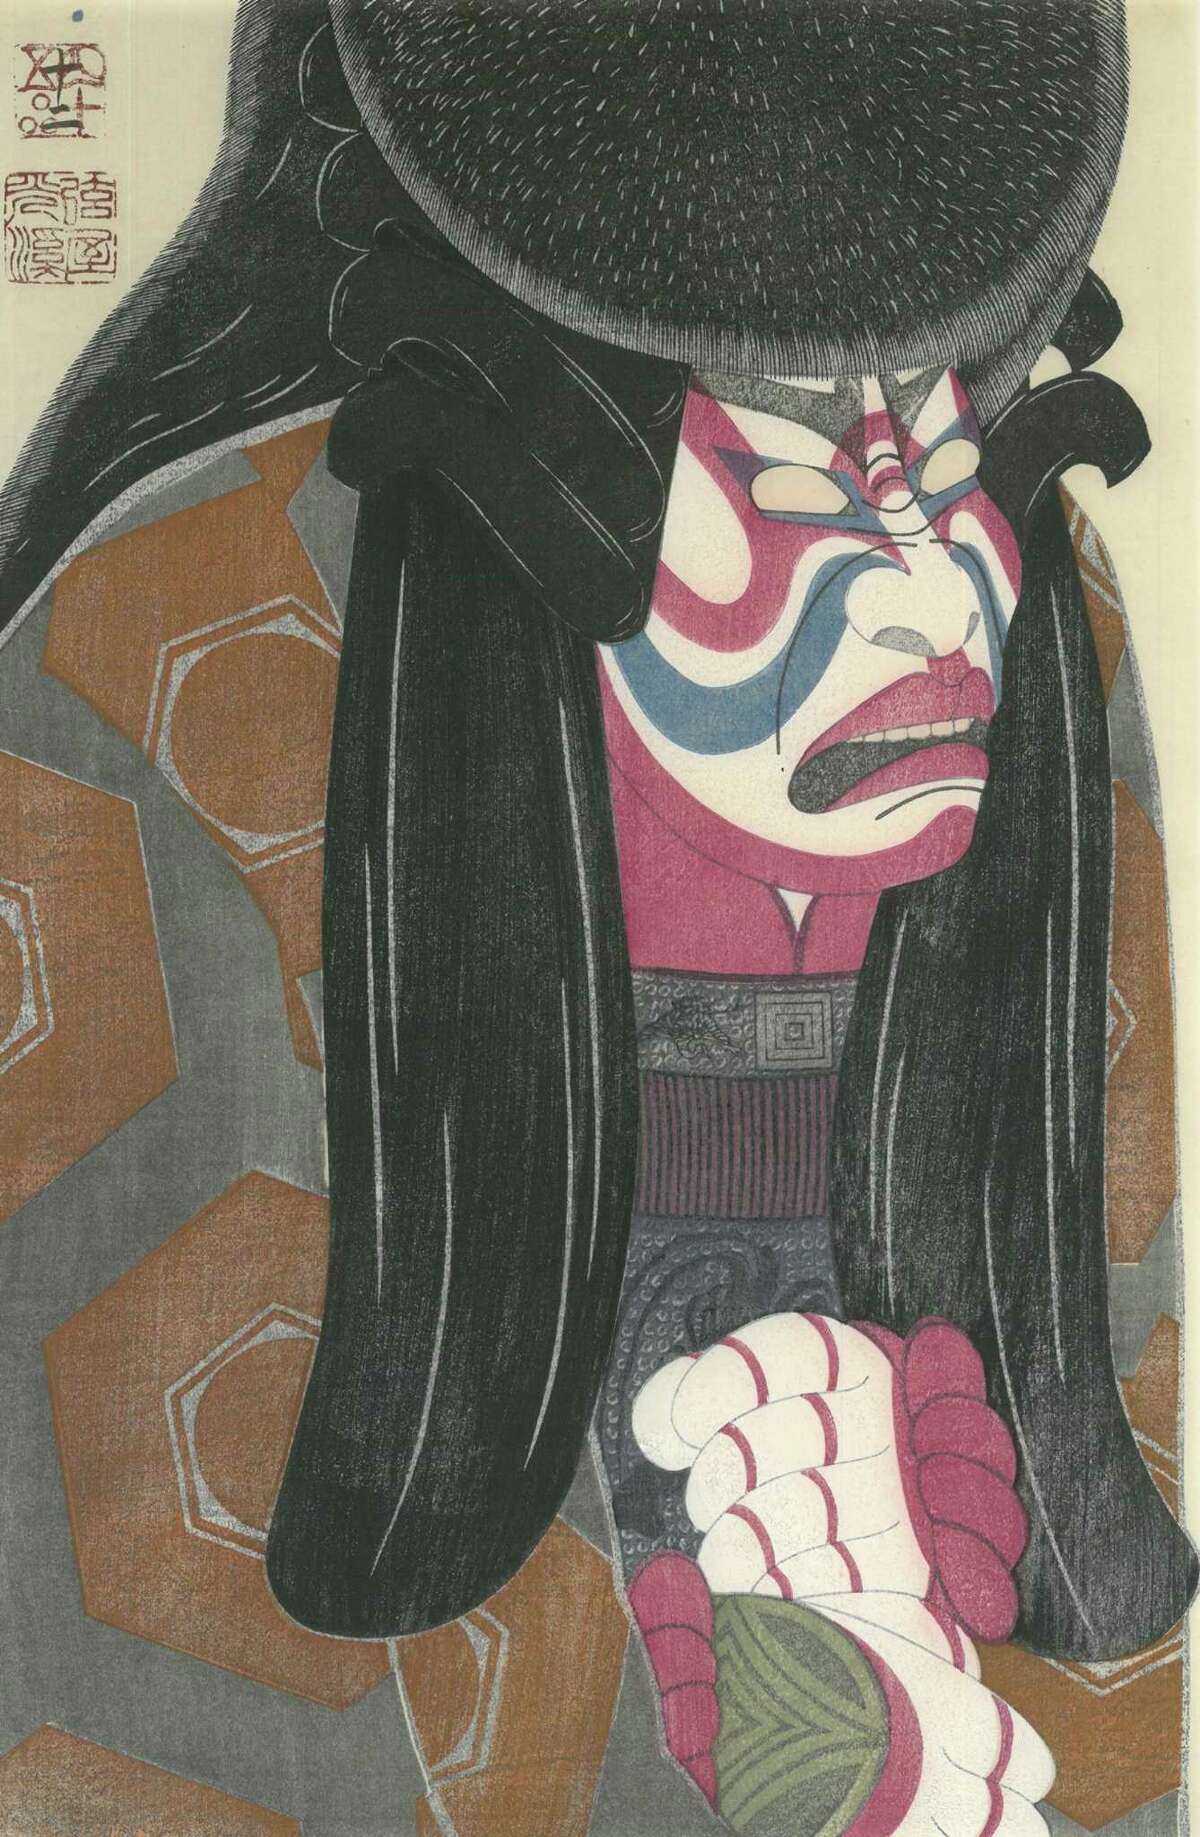 """Tsuruya Kokei shows his technical prowess by printing his woodblock images on difficult-to-use Ganpi Tori no Ko paper, a surface that does not absorb color quickly but produces rich results, as seen in """"Ichikawa Ebizo X as Akushichibyoe Kagekiyo in 'Kagekiyo,'"""" from May 1984."""